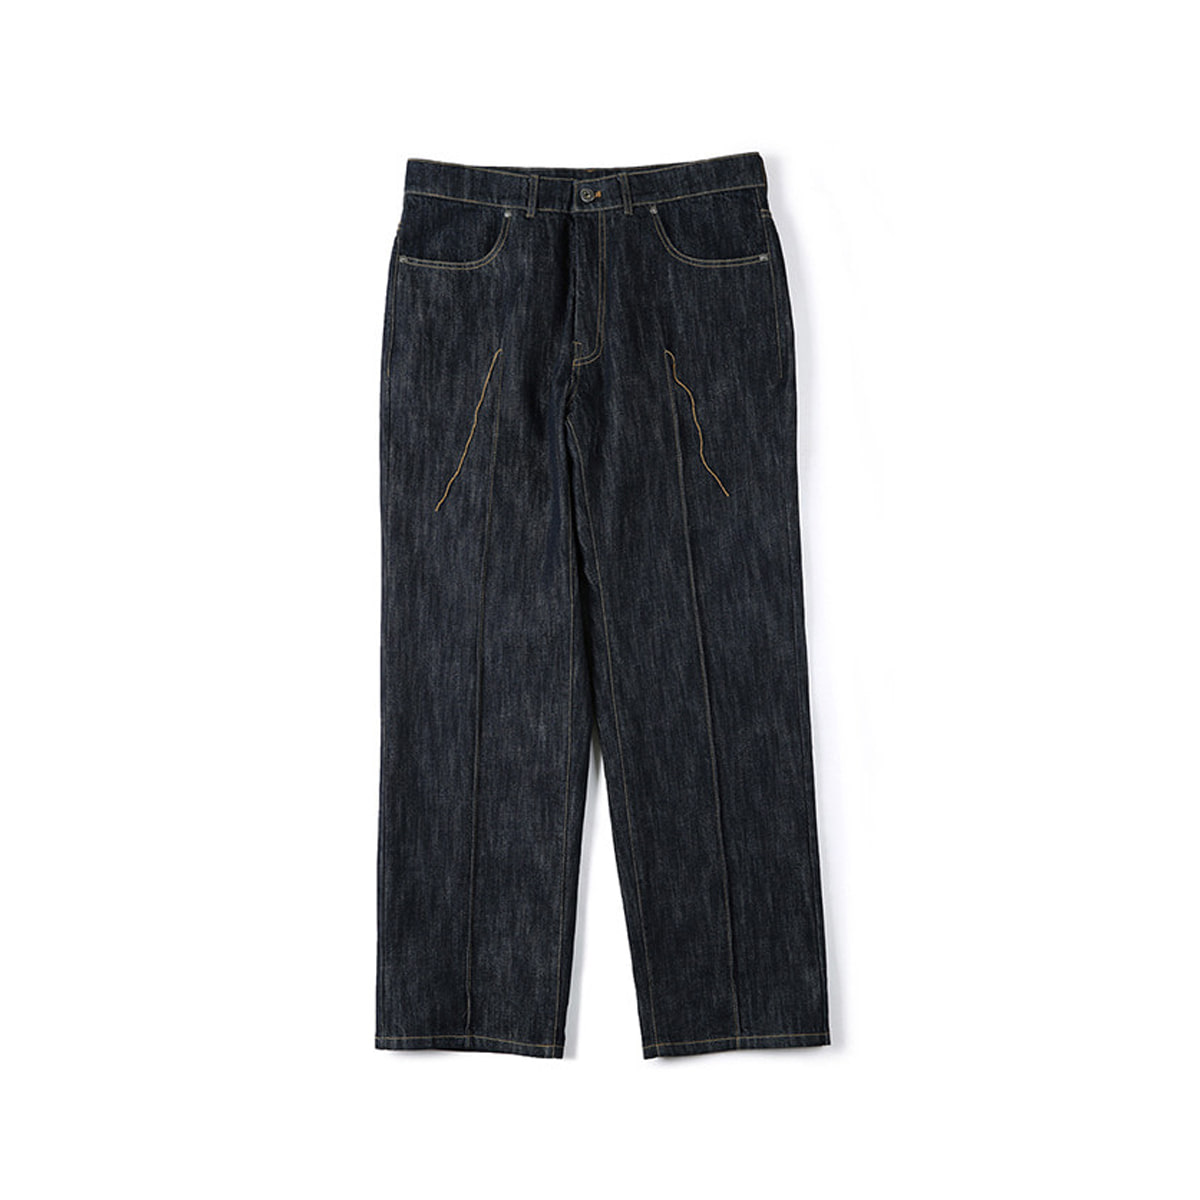 [SHIRTER] SRIRCHED CREASE DENIM PANTS 'INDIGO'